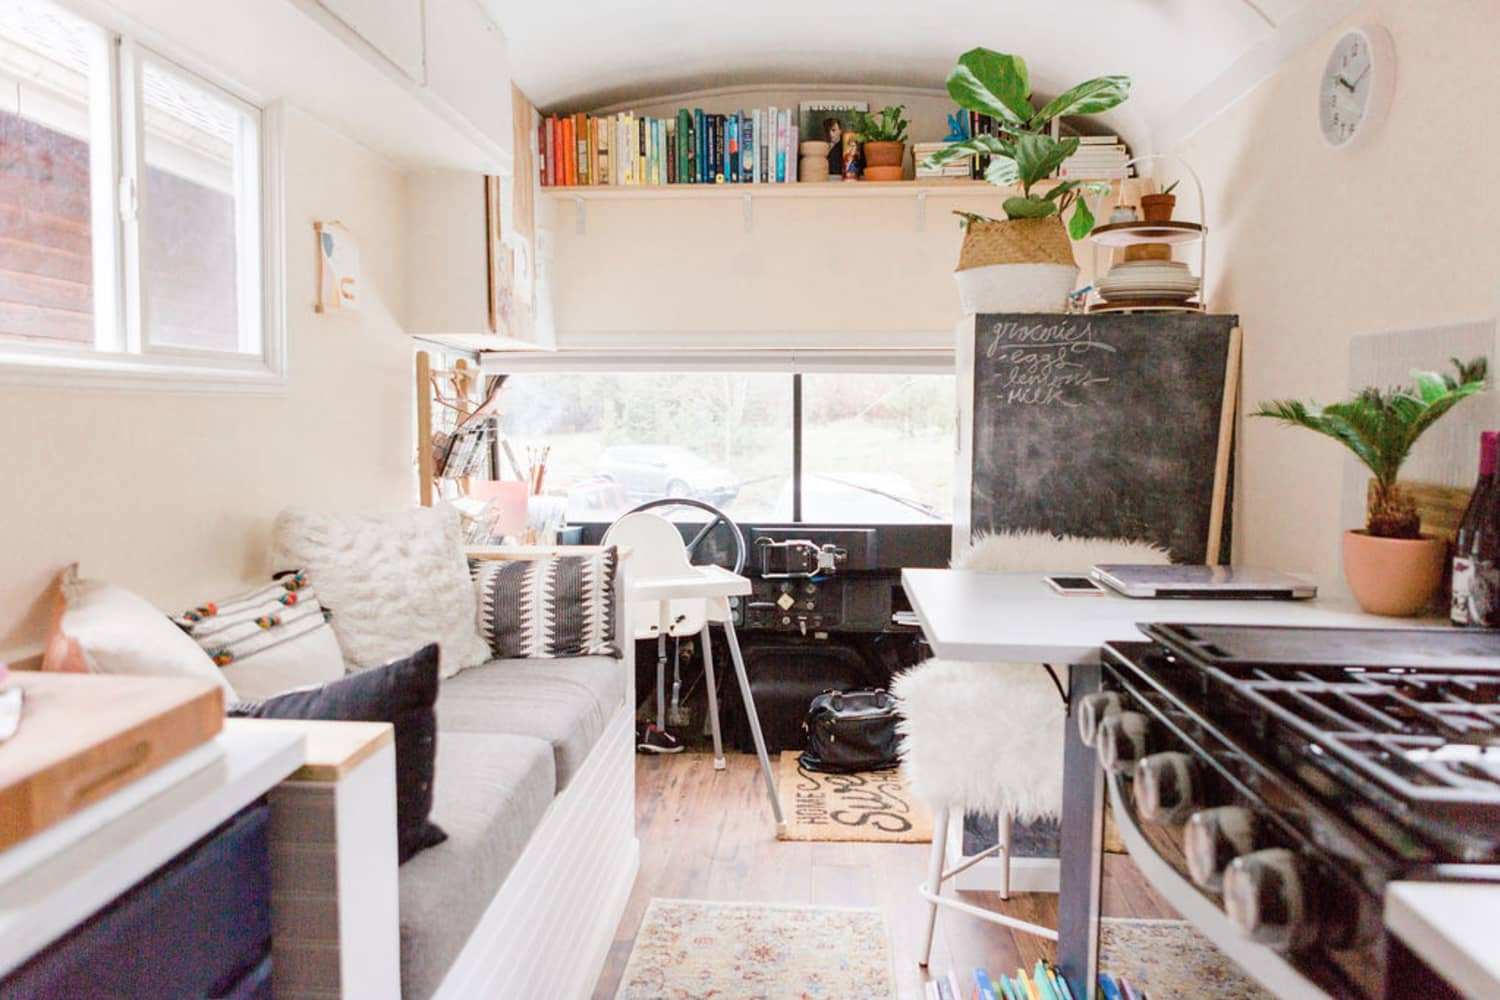 A Family of Three Snuggles into a 200-Square-Foot Modern Minimalist Tiny House on Wheels